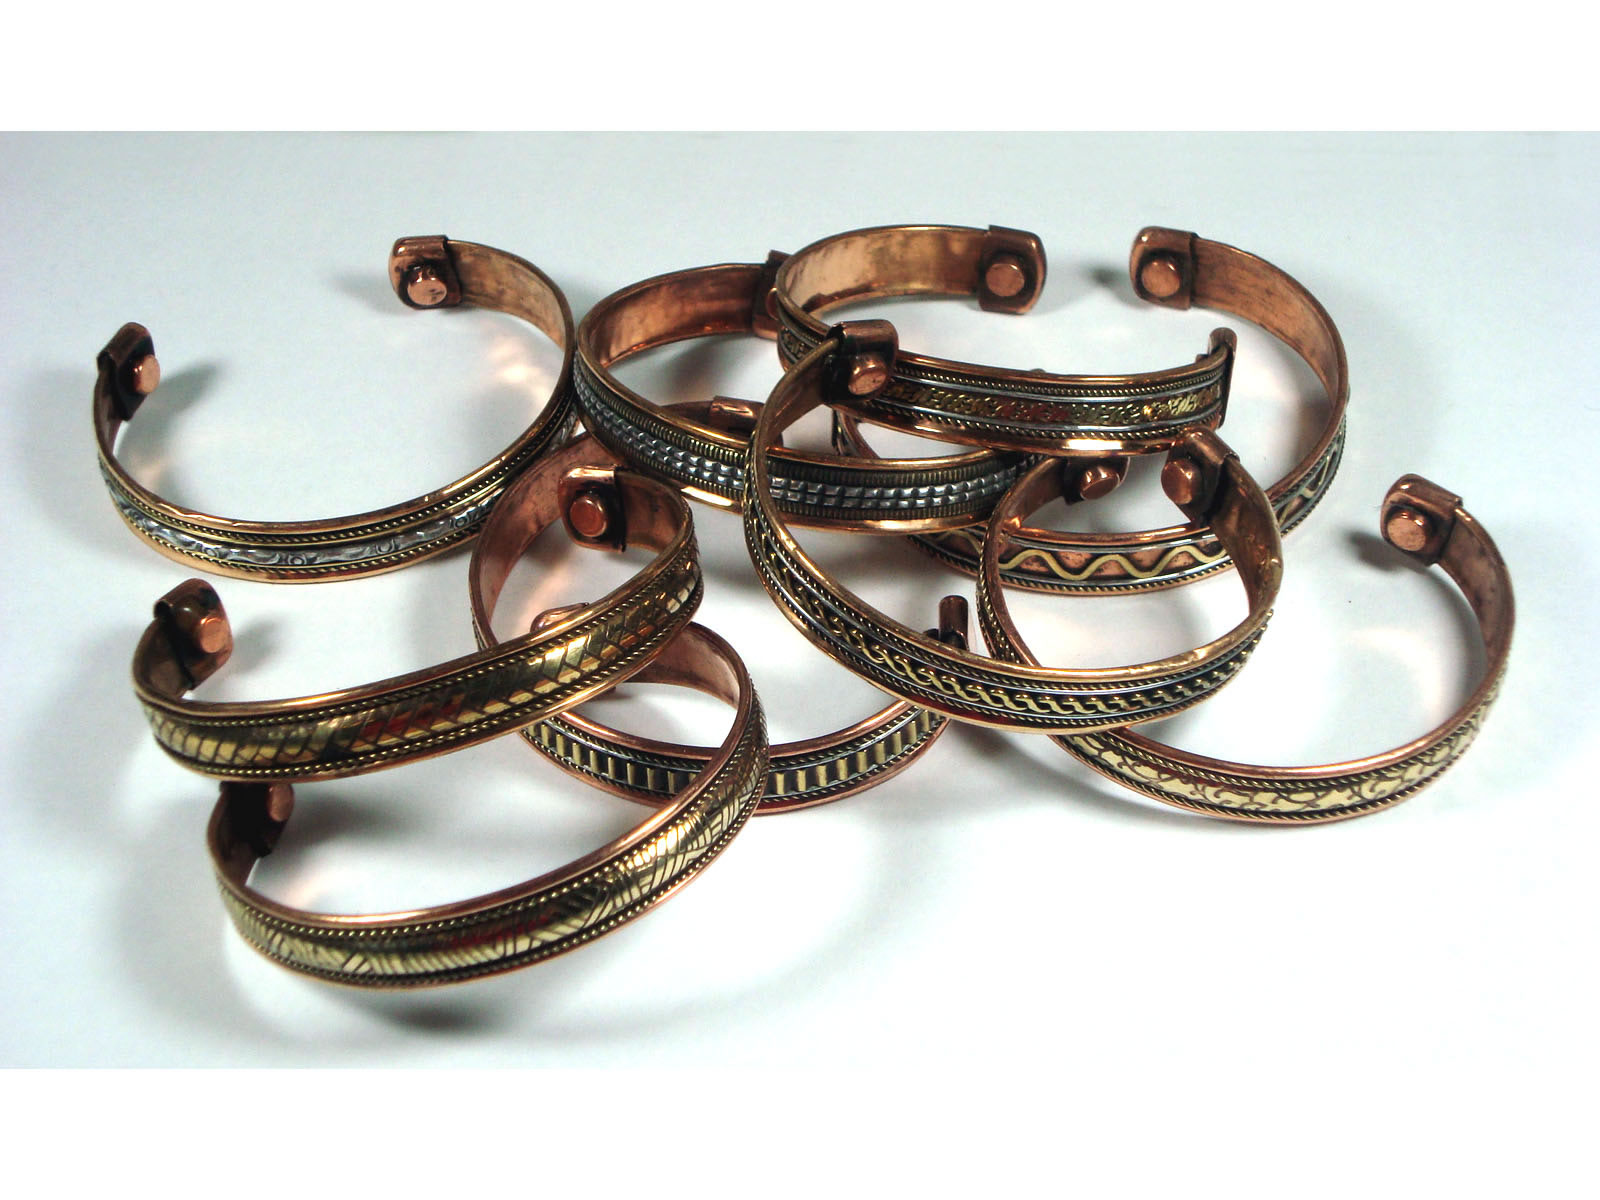 jewel antique punjabi kara bangels bangles moti with house products image set bronze